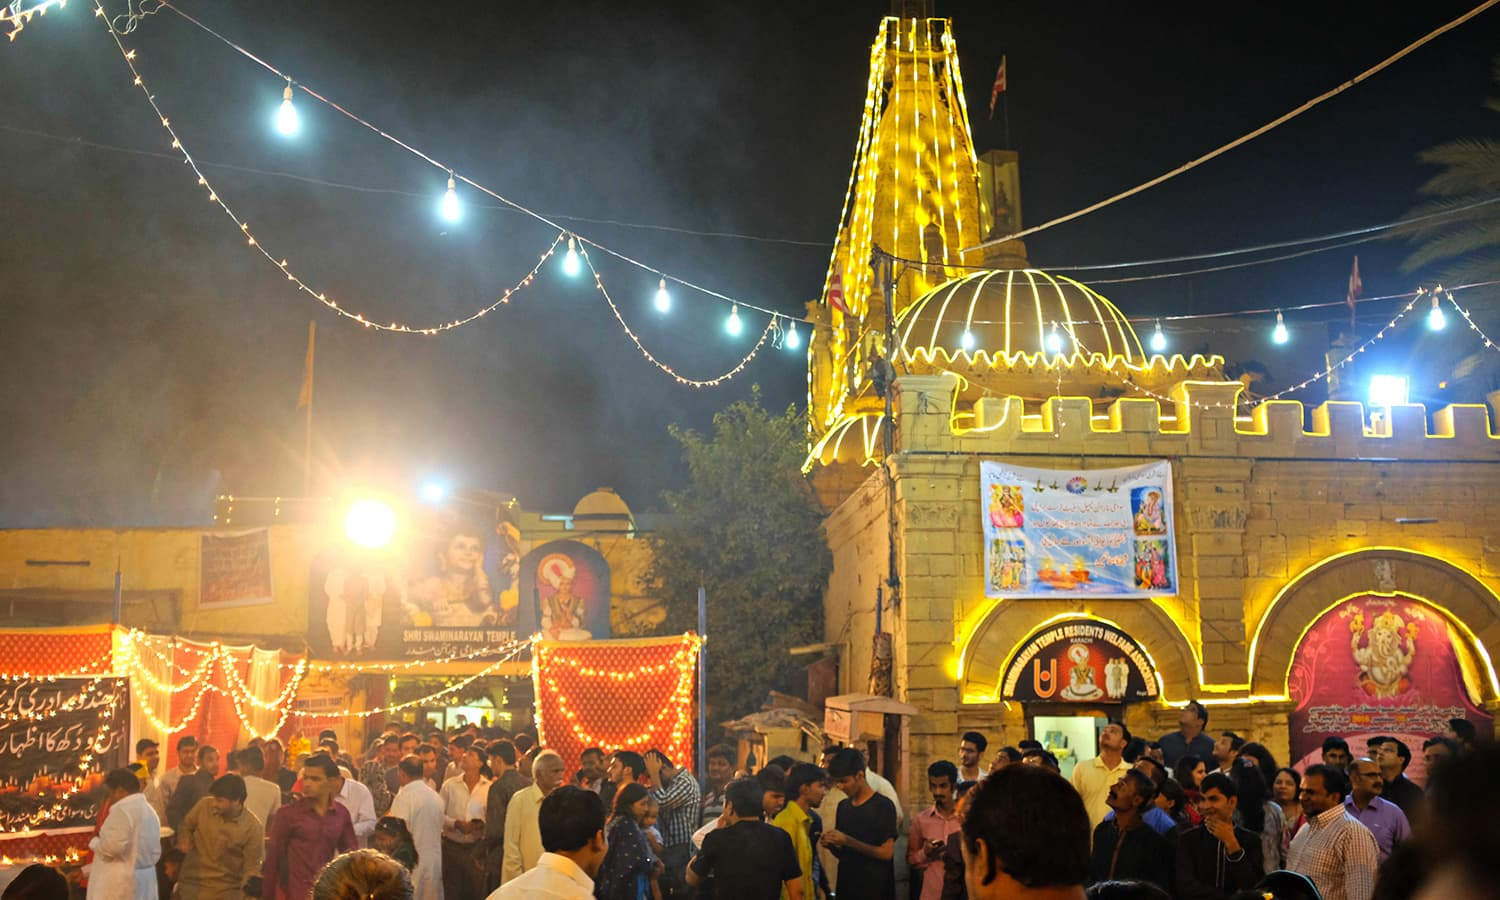 The main temple was garlanded with lights and flowers.